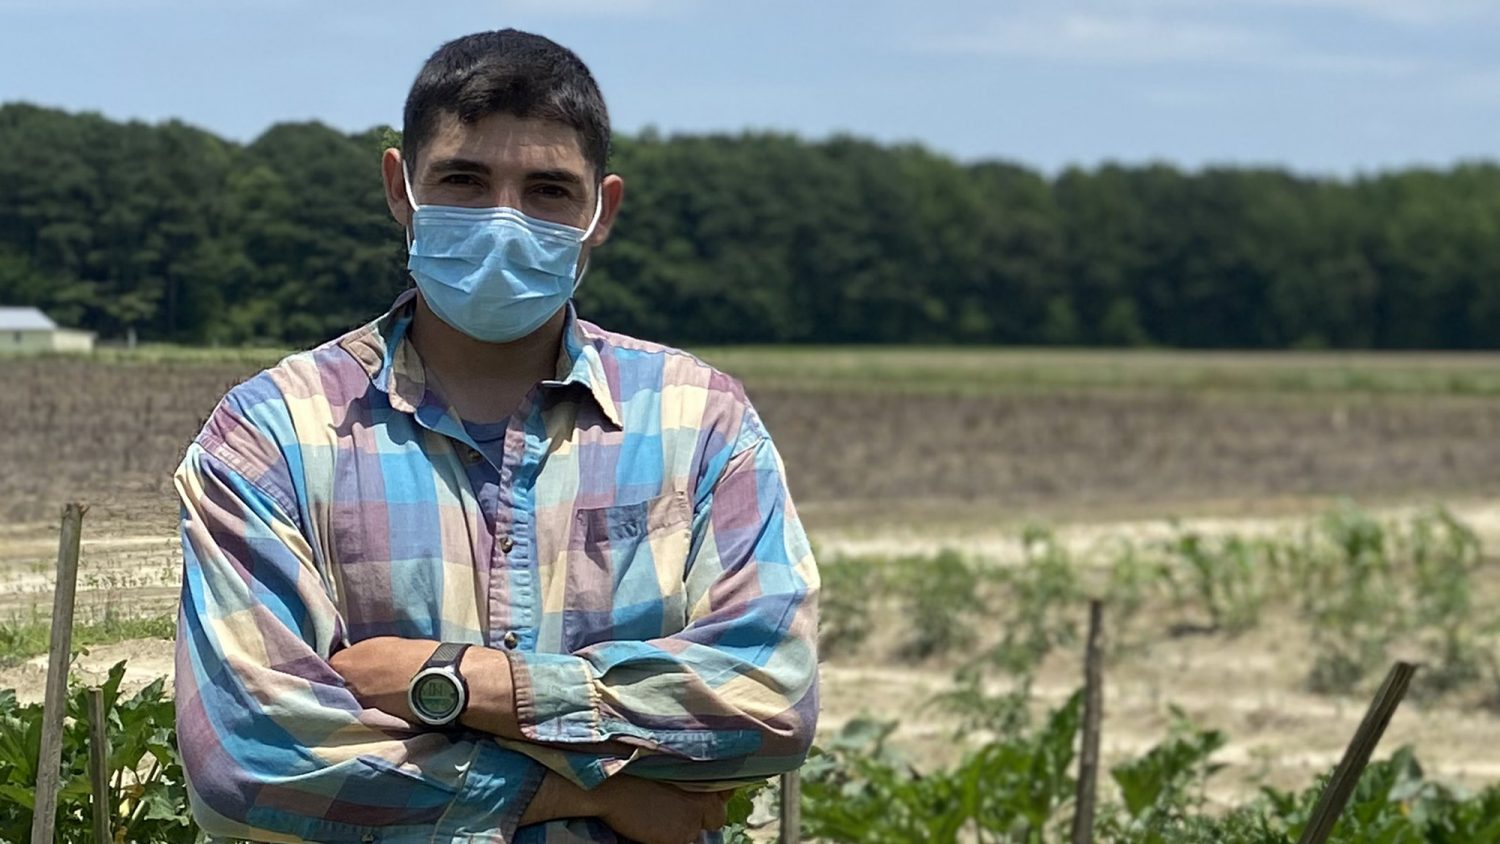 A Hispanic farmworker stands in a farm field with arms crossed while wearing a face covering during an NC State Extension Farmworker Health and Safety Education Program training in Edgecombe County, North Carolina.